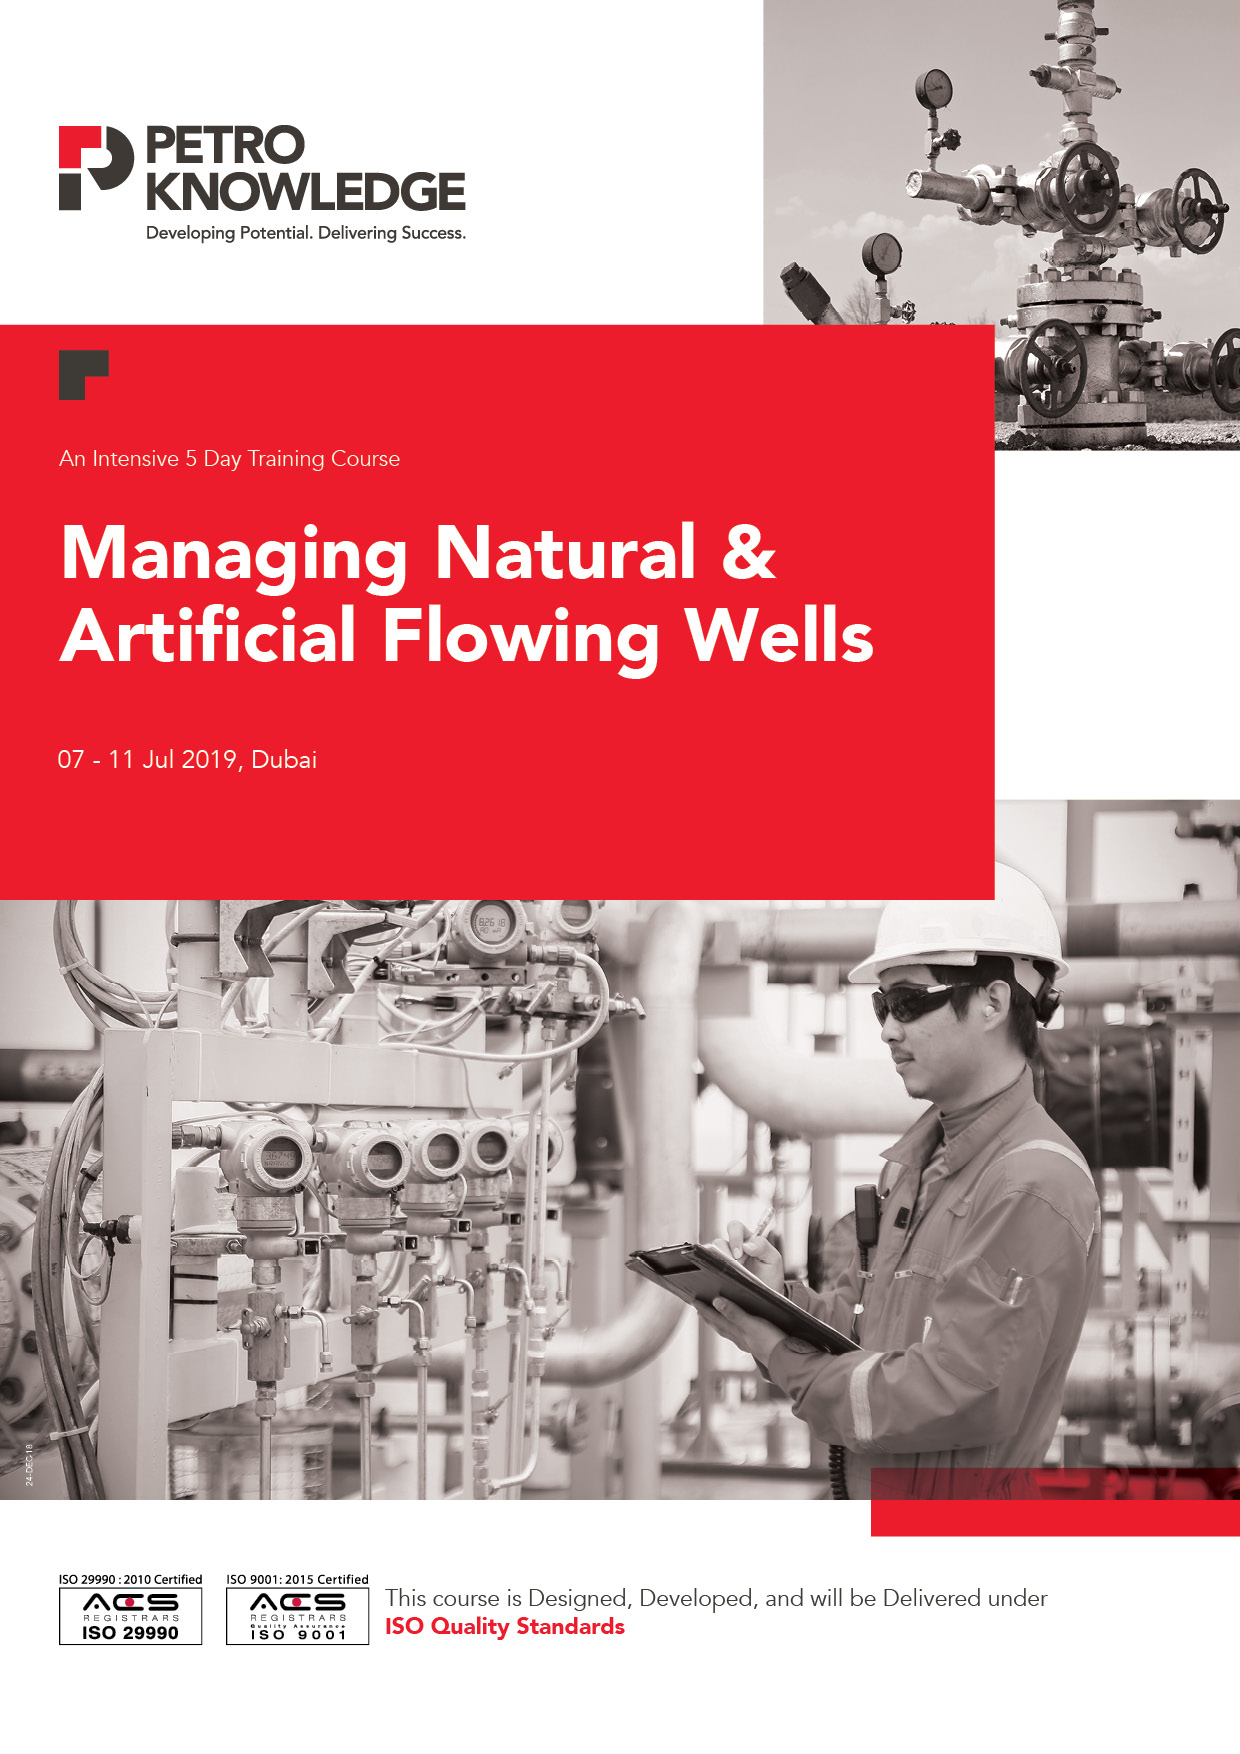 Managing Natural & Artificial Flowing Wells